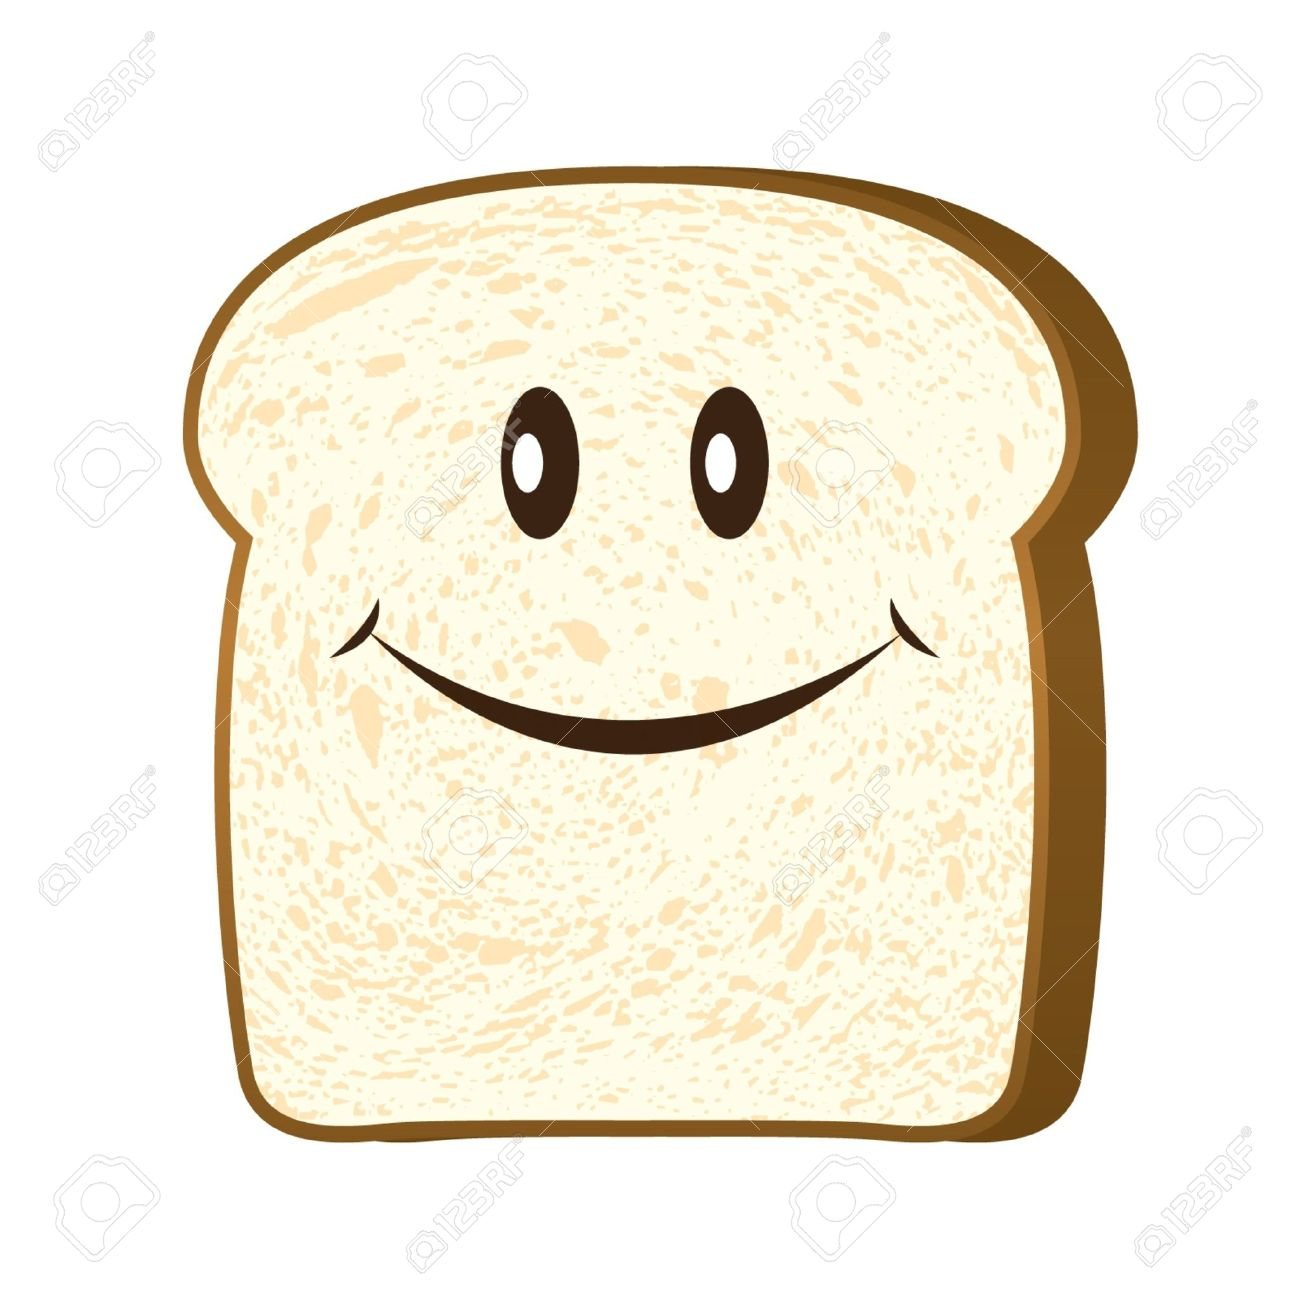 Bread slice isolated on white vector - 15558107